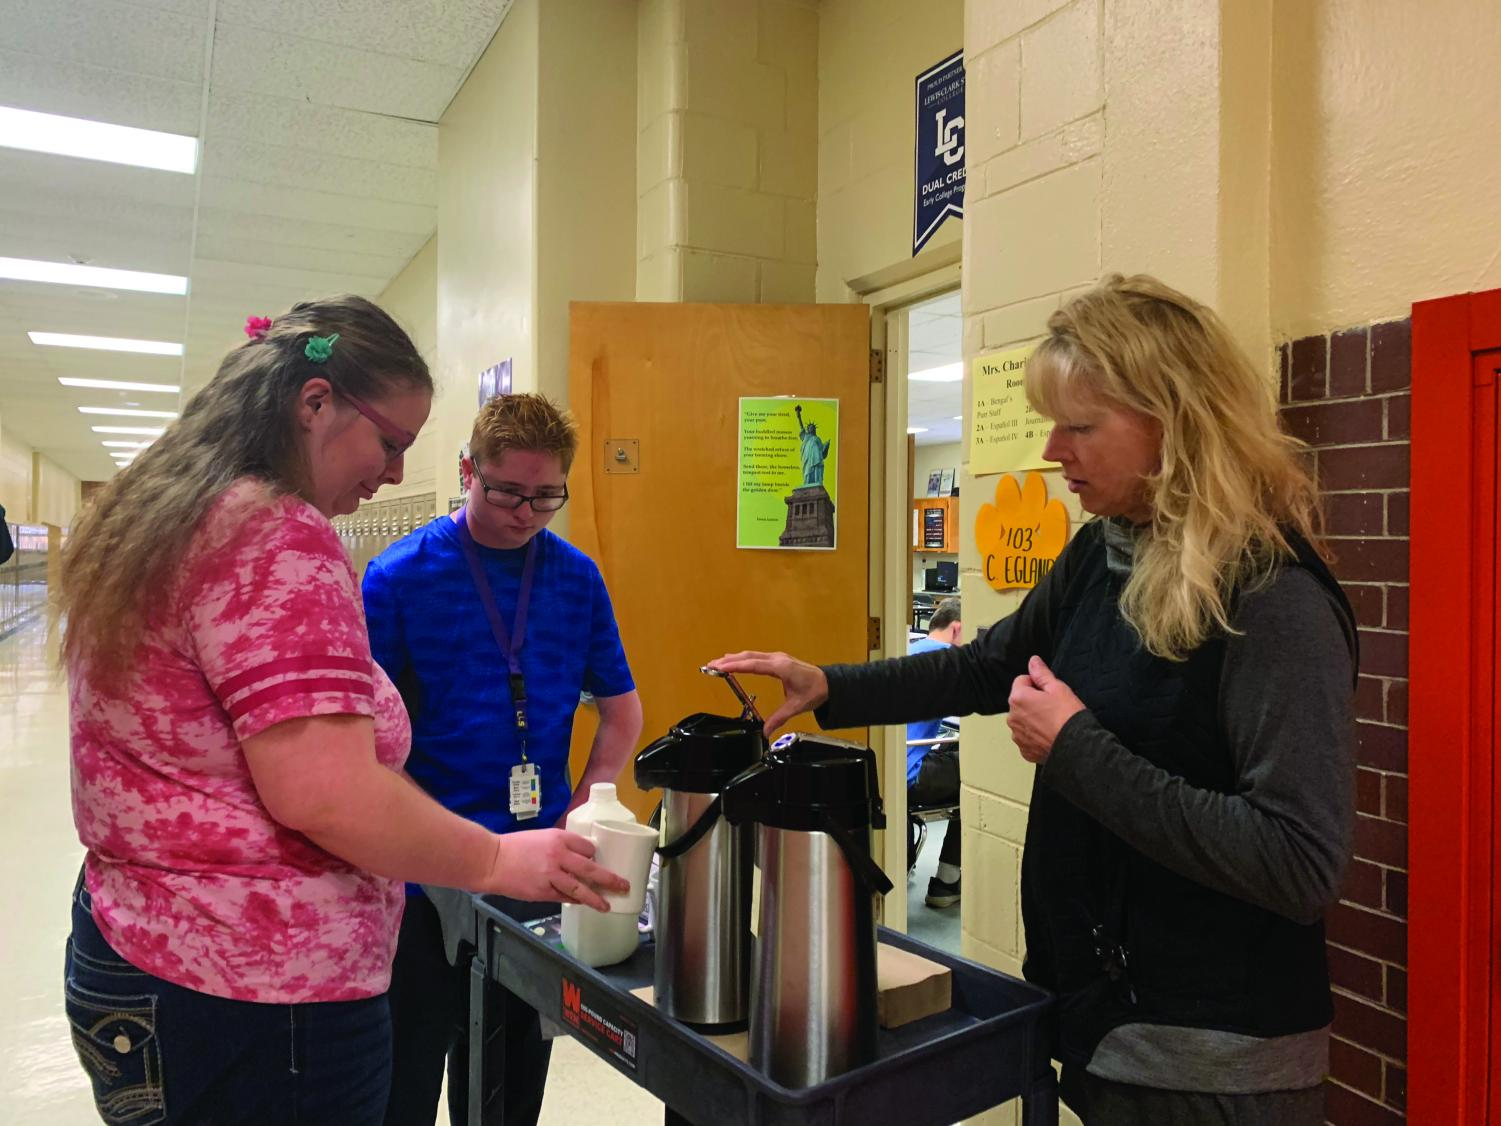 Two Life Skills students (left) help prepare coffee for a teacher as a part of the new coffee cart service. Photo by Kim Neri.